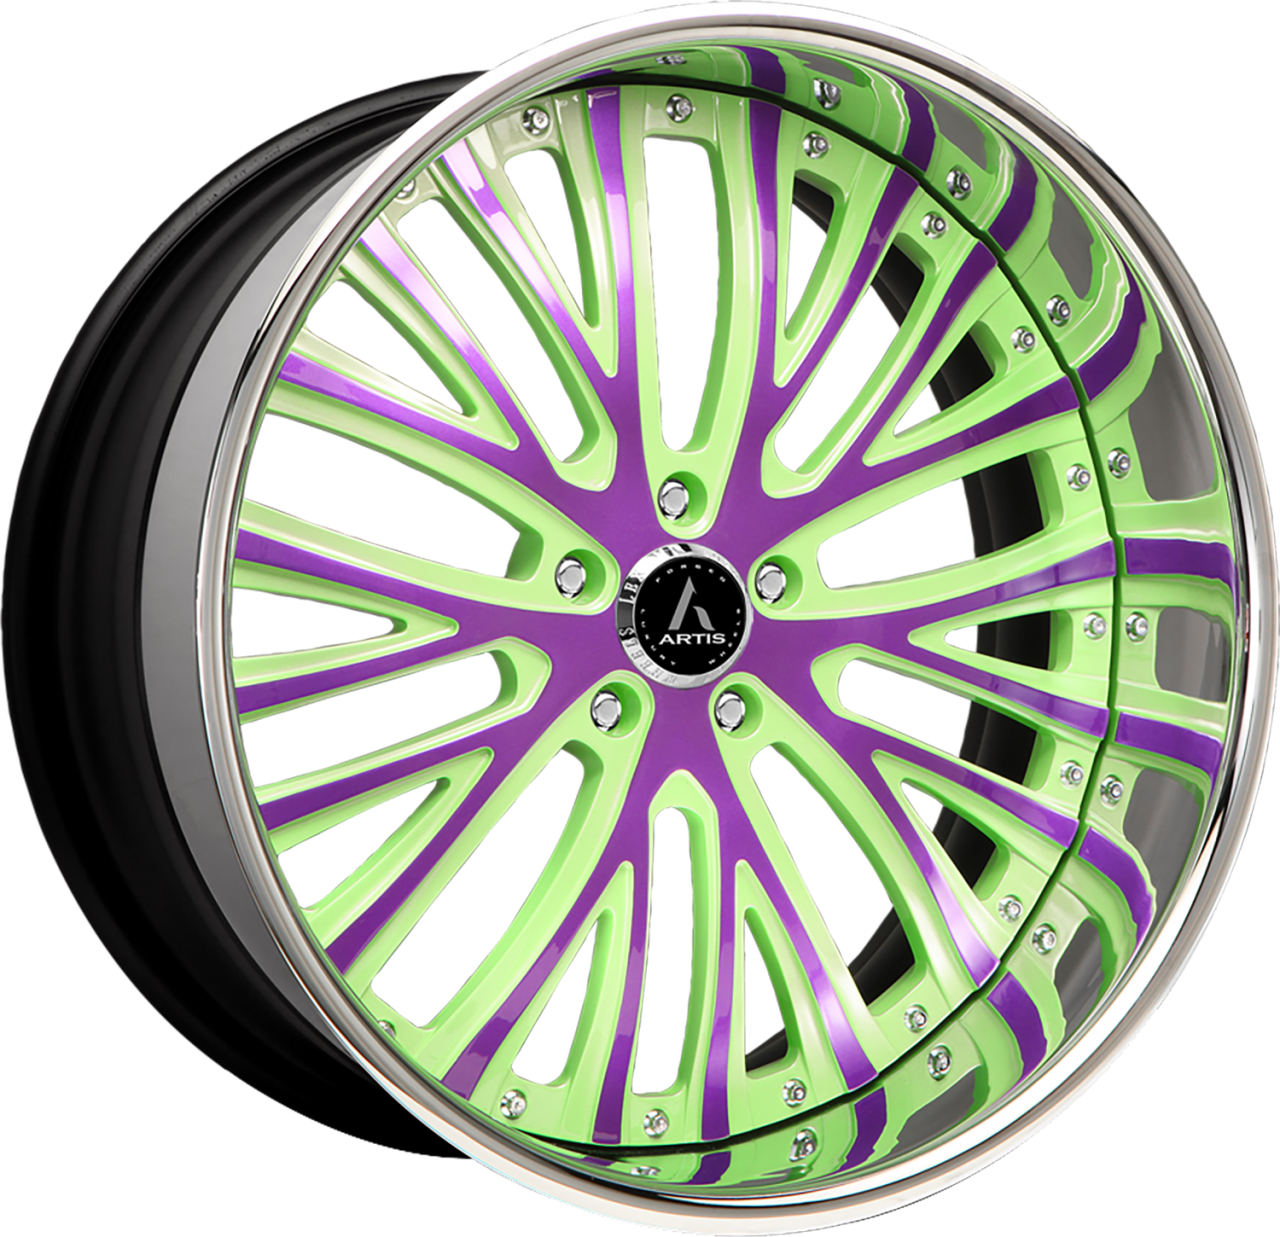 Artis Forged Woodward wheel with Custom Purple and Green finish